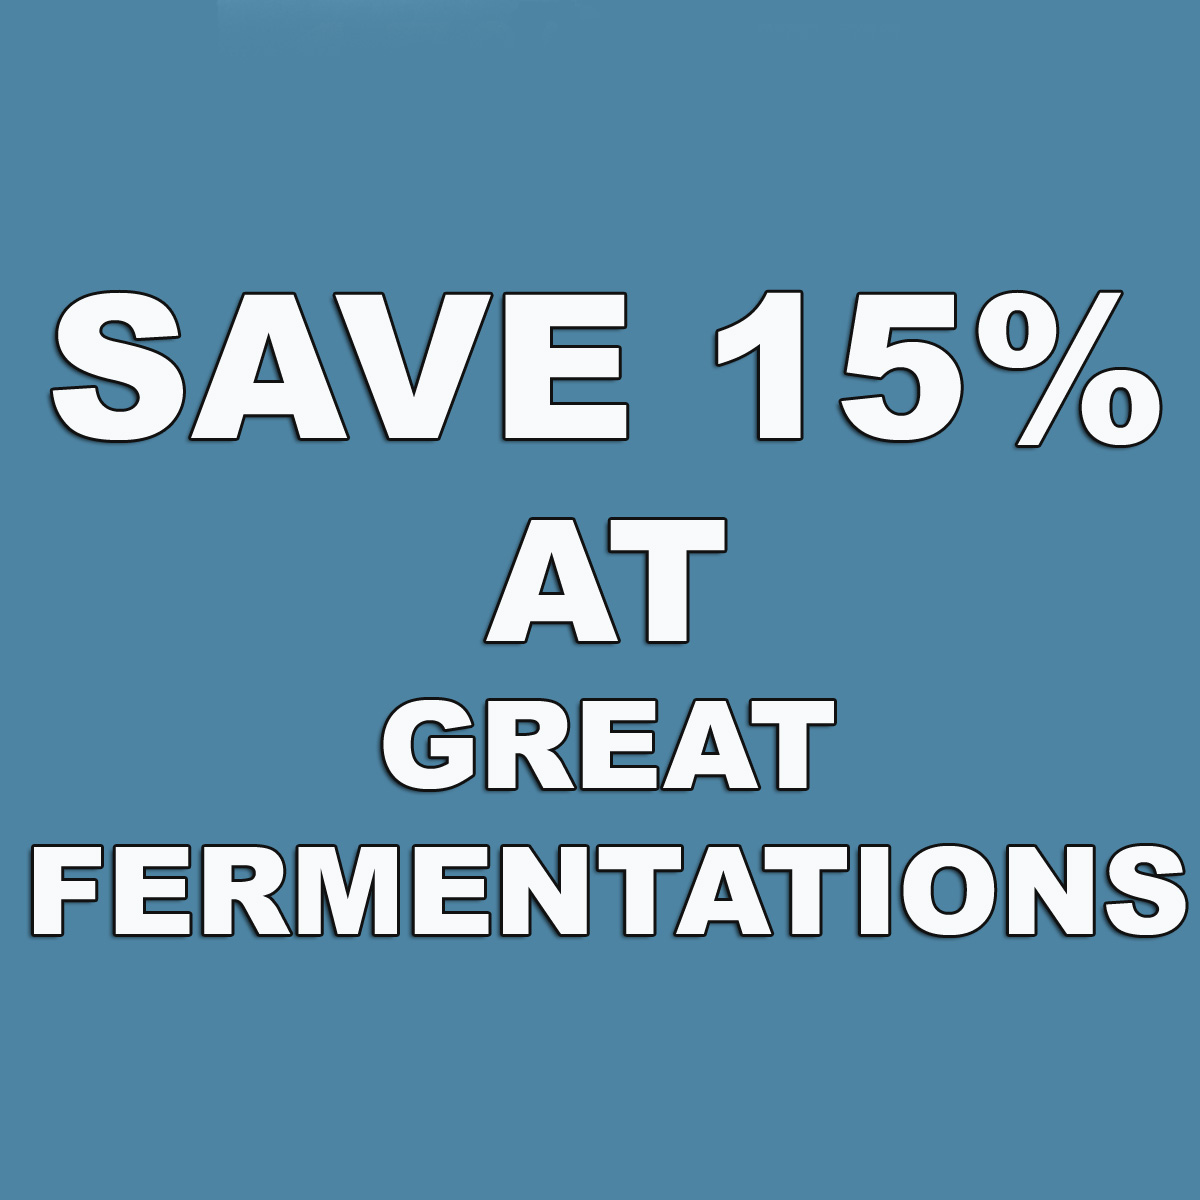 Home Wine Making Coupon Codes for Save 15% Site Wide at GreatFermentations.com with this Promo Code Coupon Code